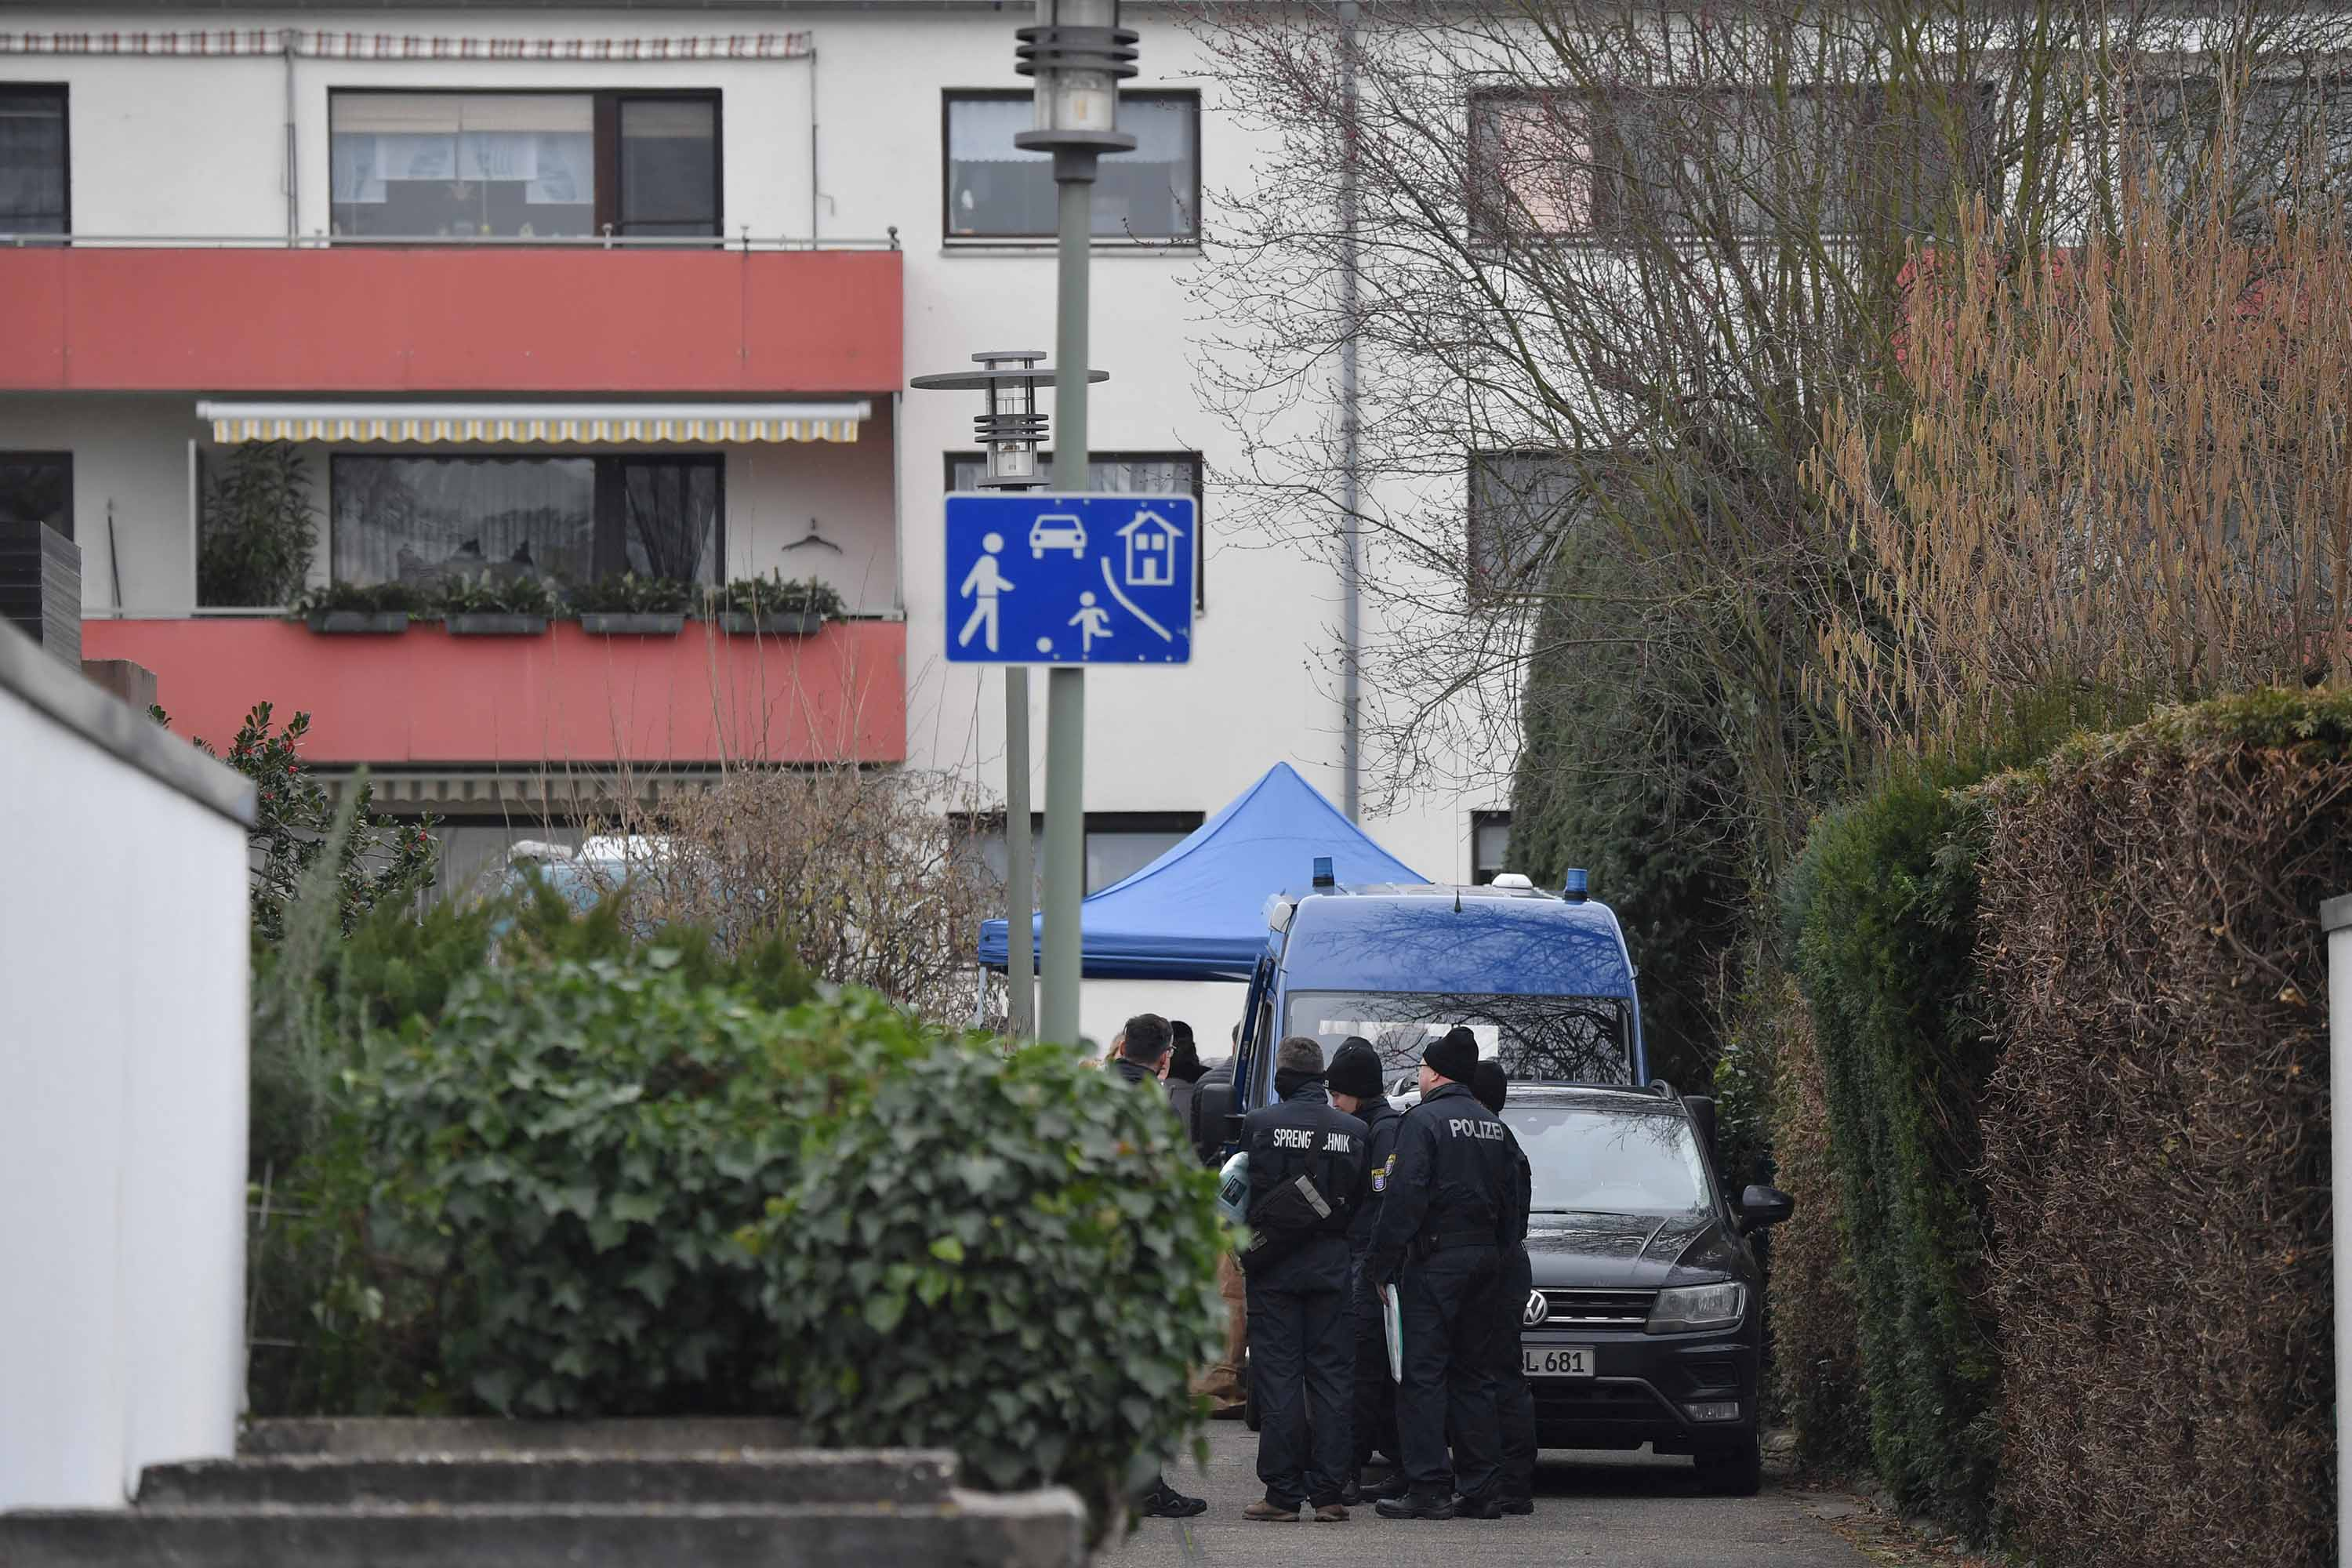 Police officers stand by the house where the suspect was found dead in Hanau, Germany.